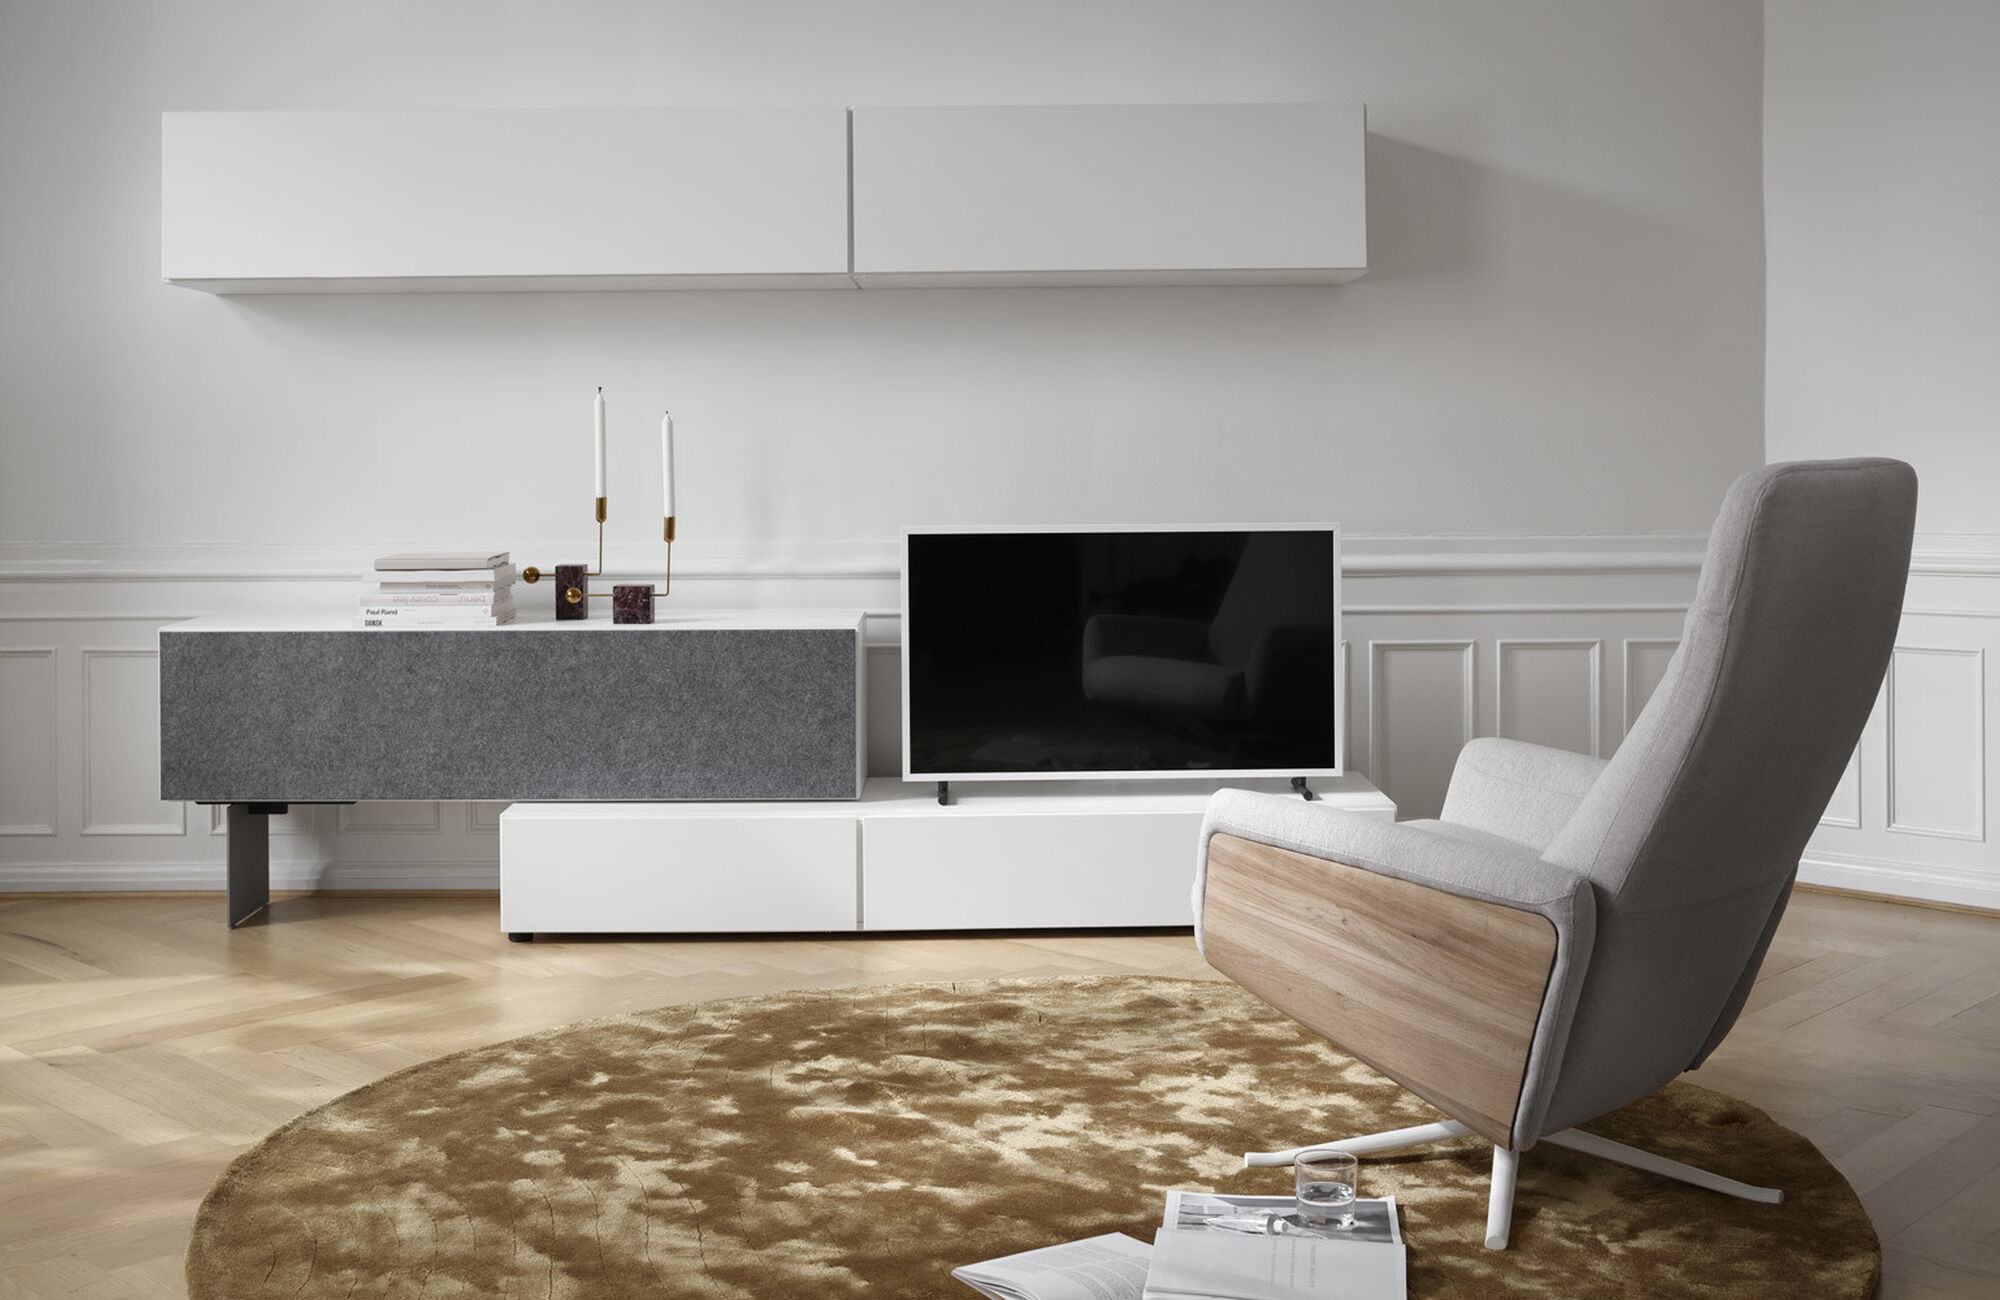 Wall systems - Lugano wall mounted cabinets